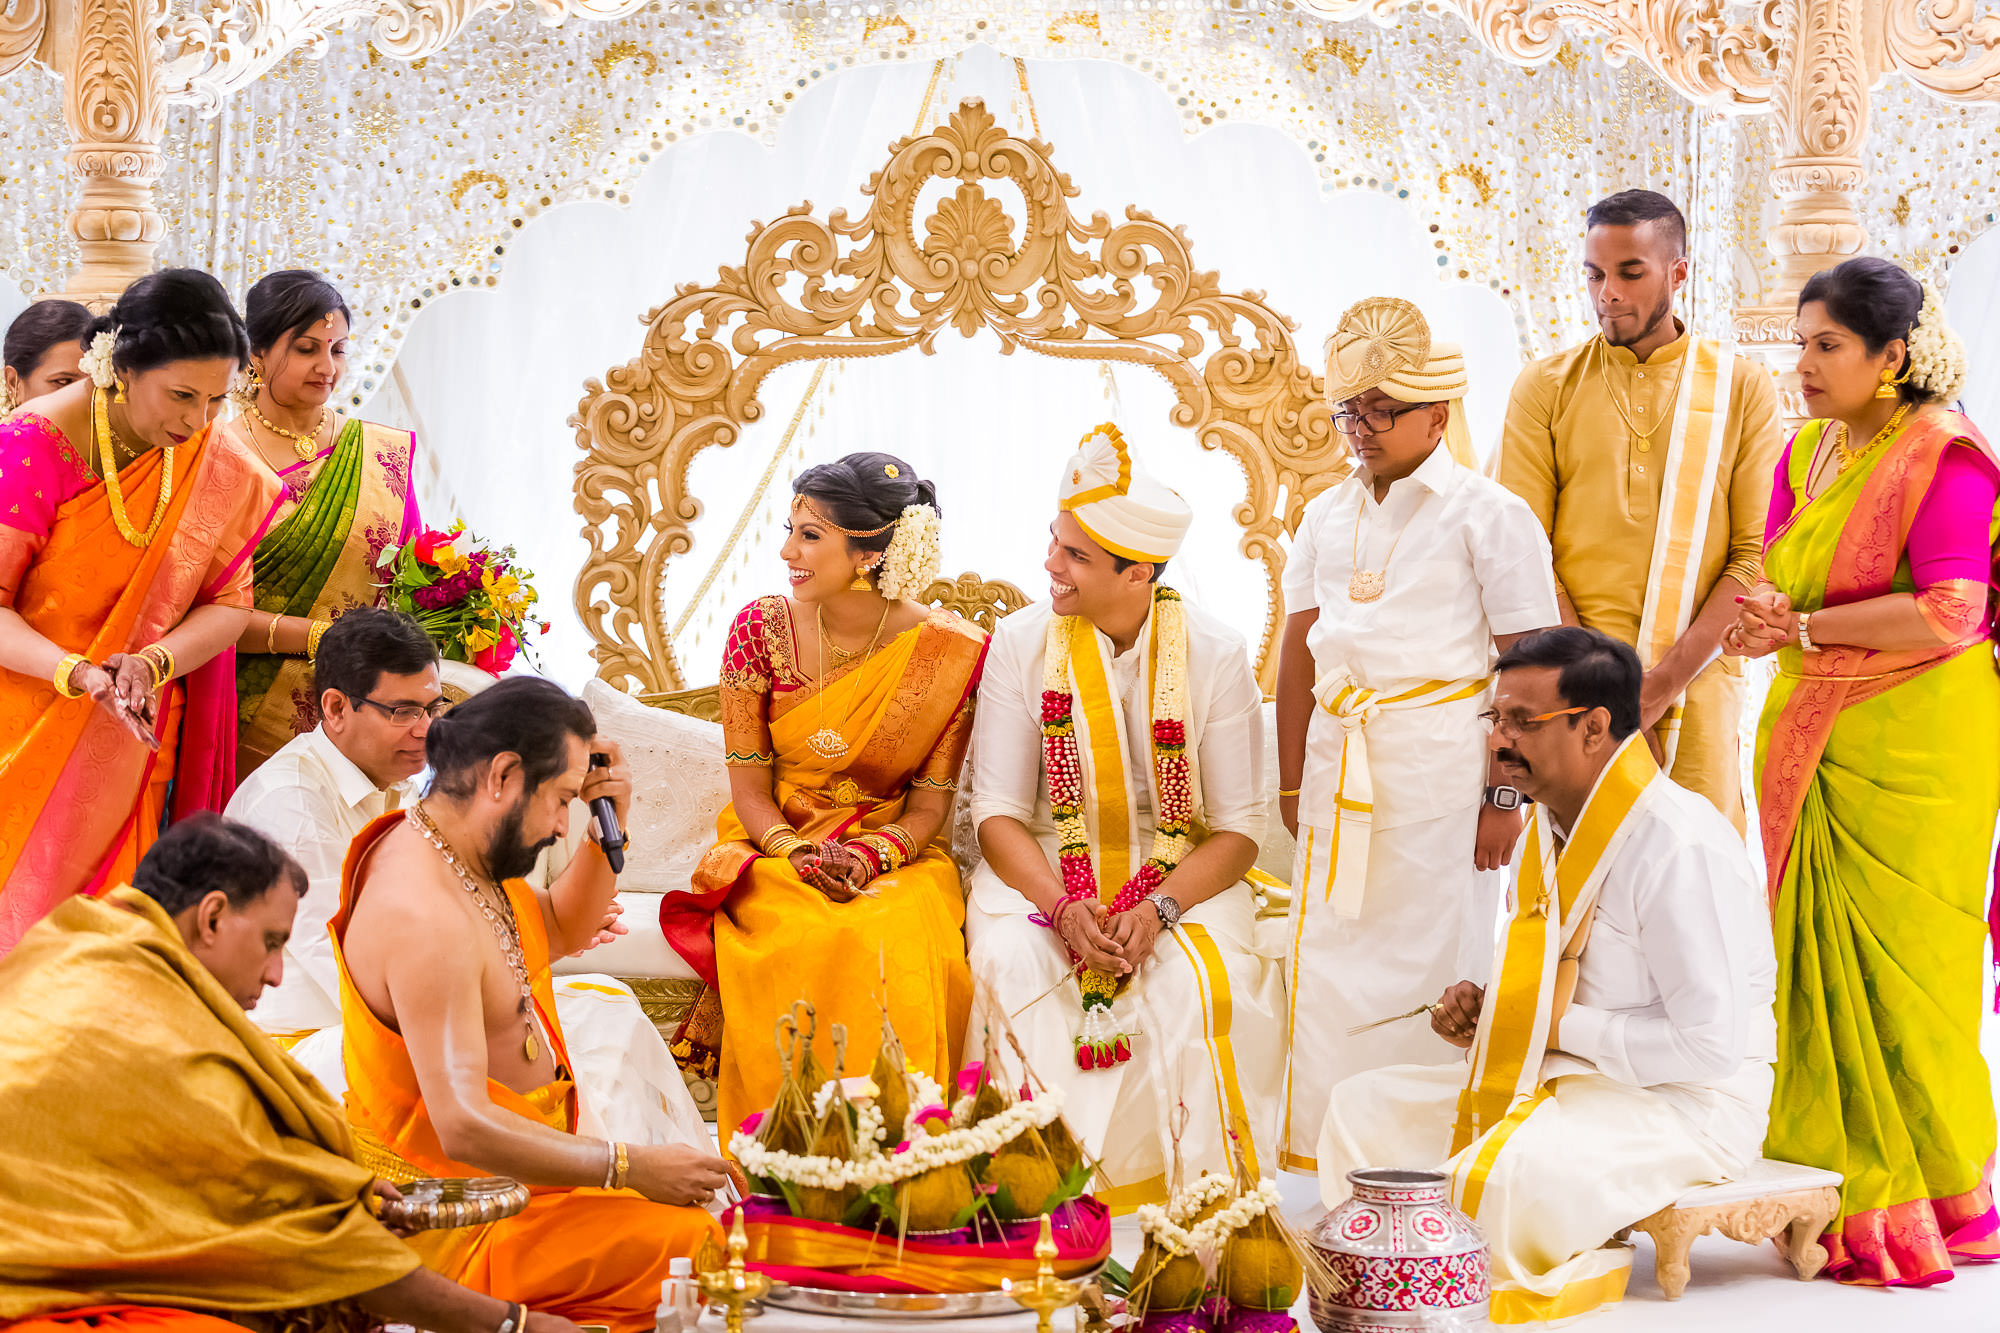 asian-wedding-hindu-tamil-photographer-heythorpe-oxford-0047.jpg